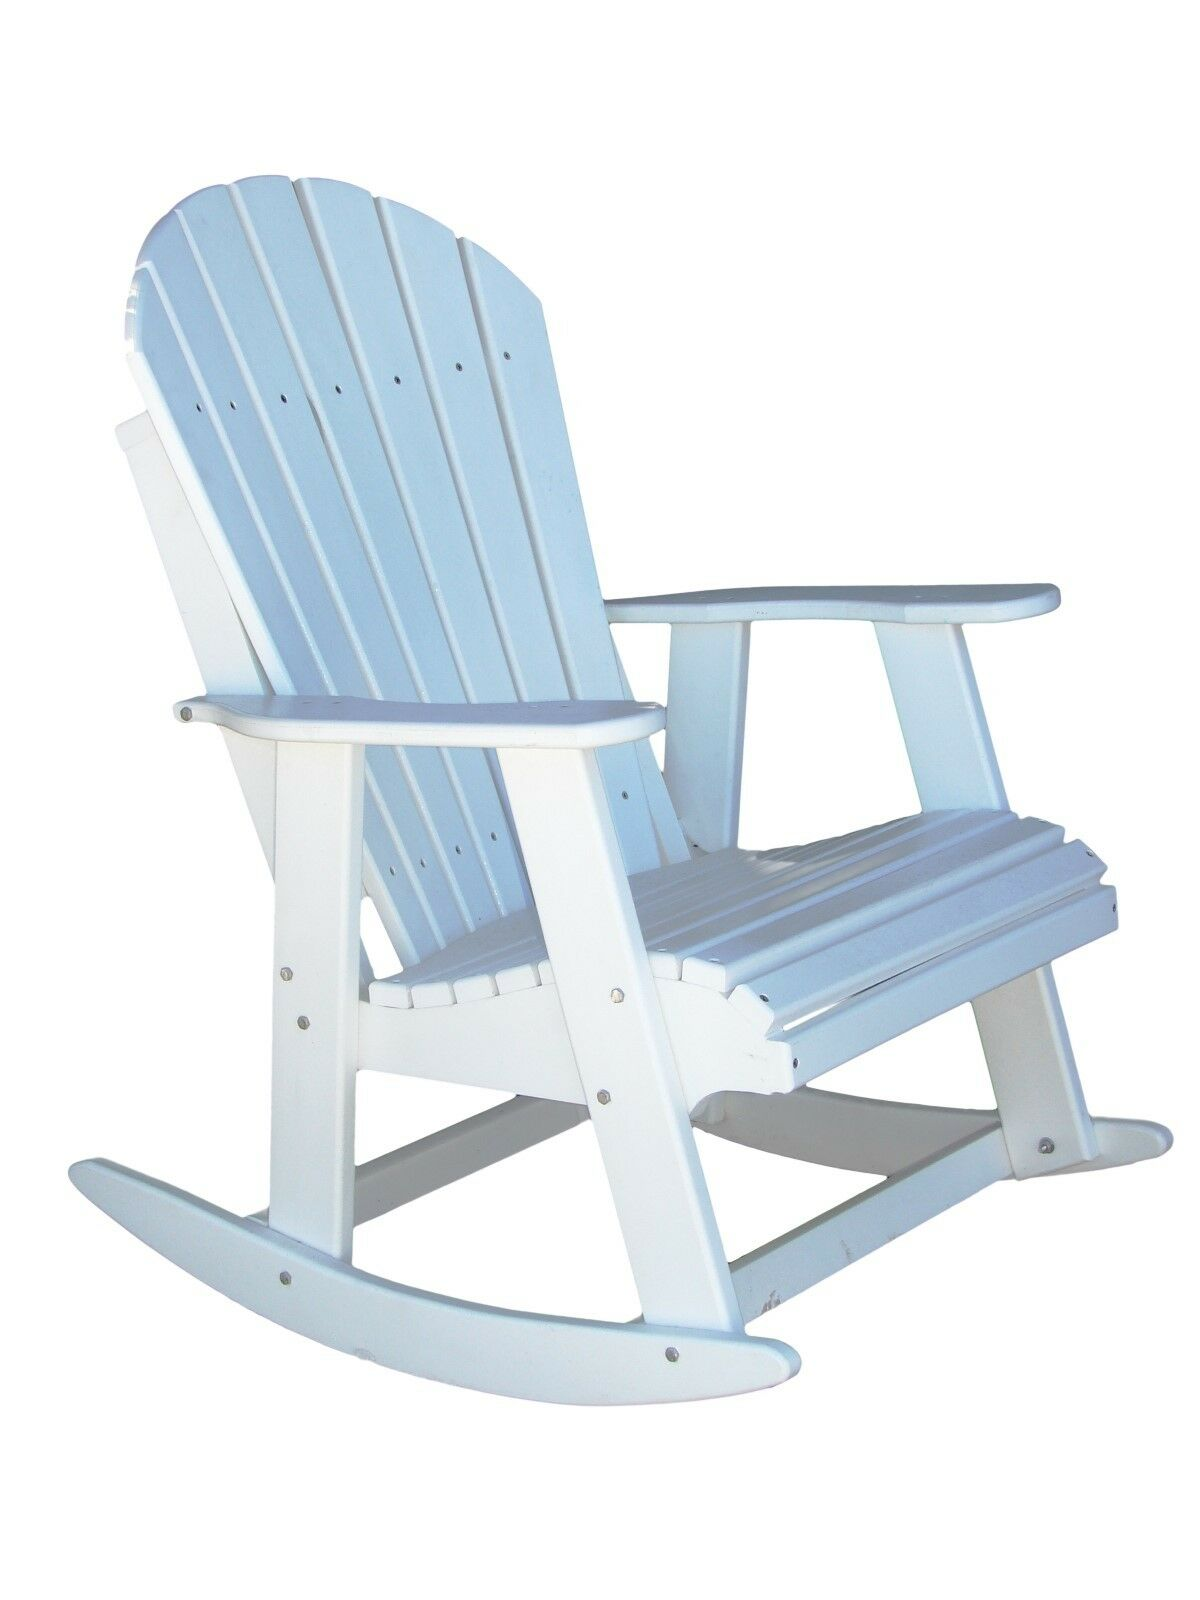 phat tommy 702 rockerpoly white recycled poly adirondack patio